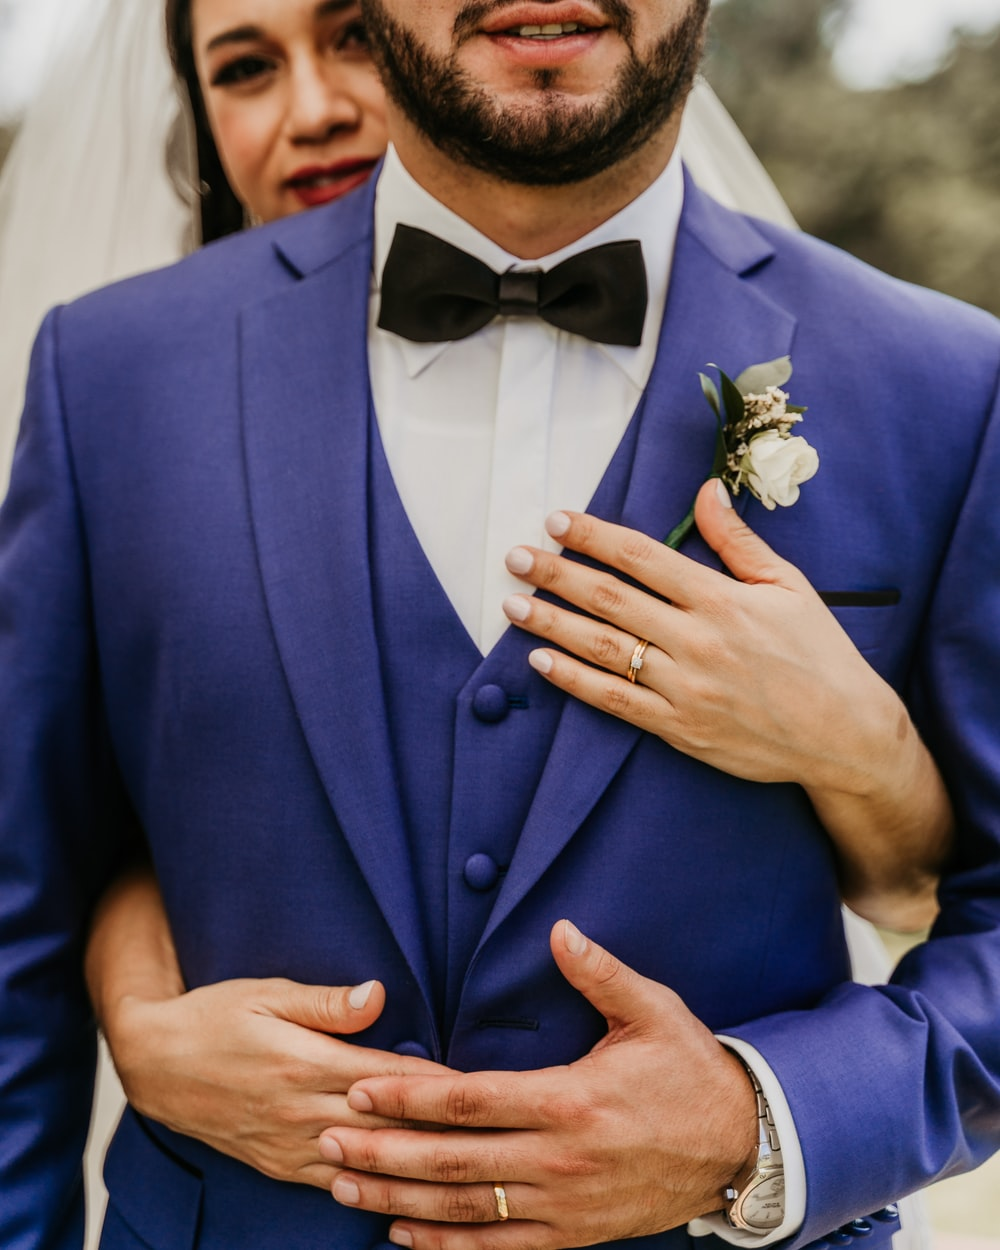 man in blue suit jacket holding white rose